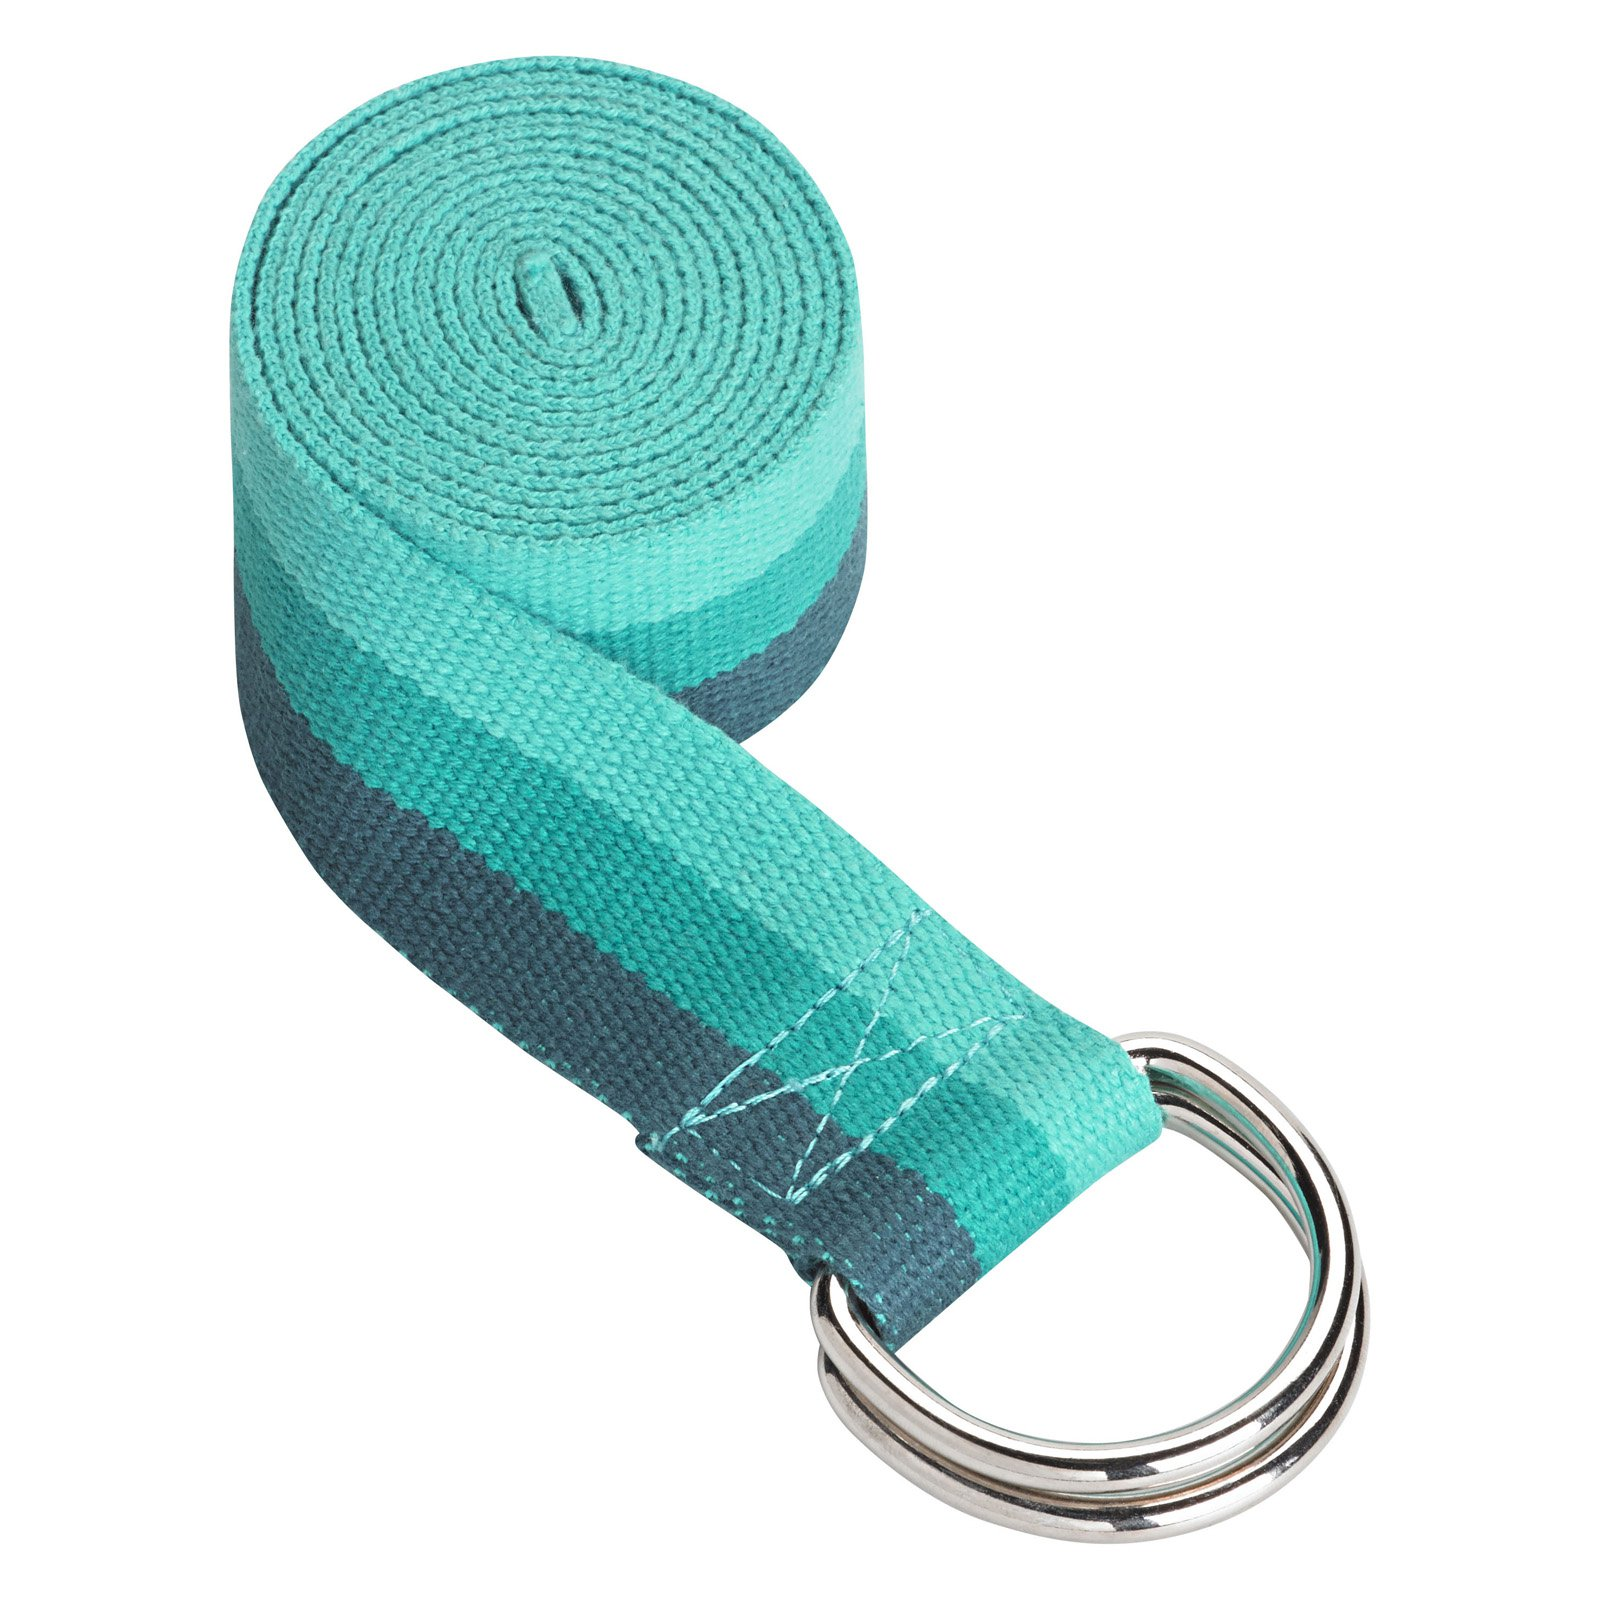 Gaiam Striped Yoga Strap, 8ft, Lush Teal